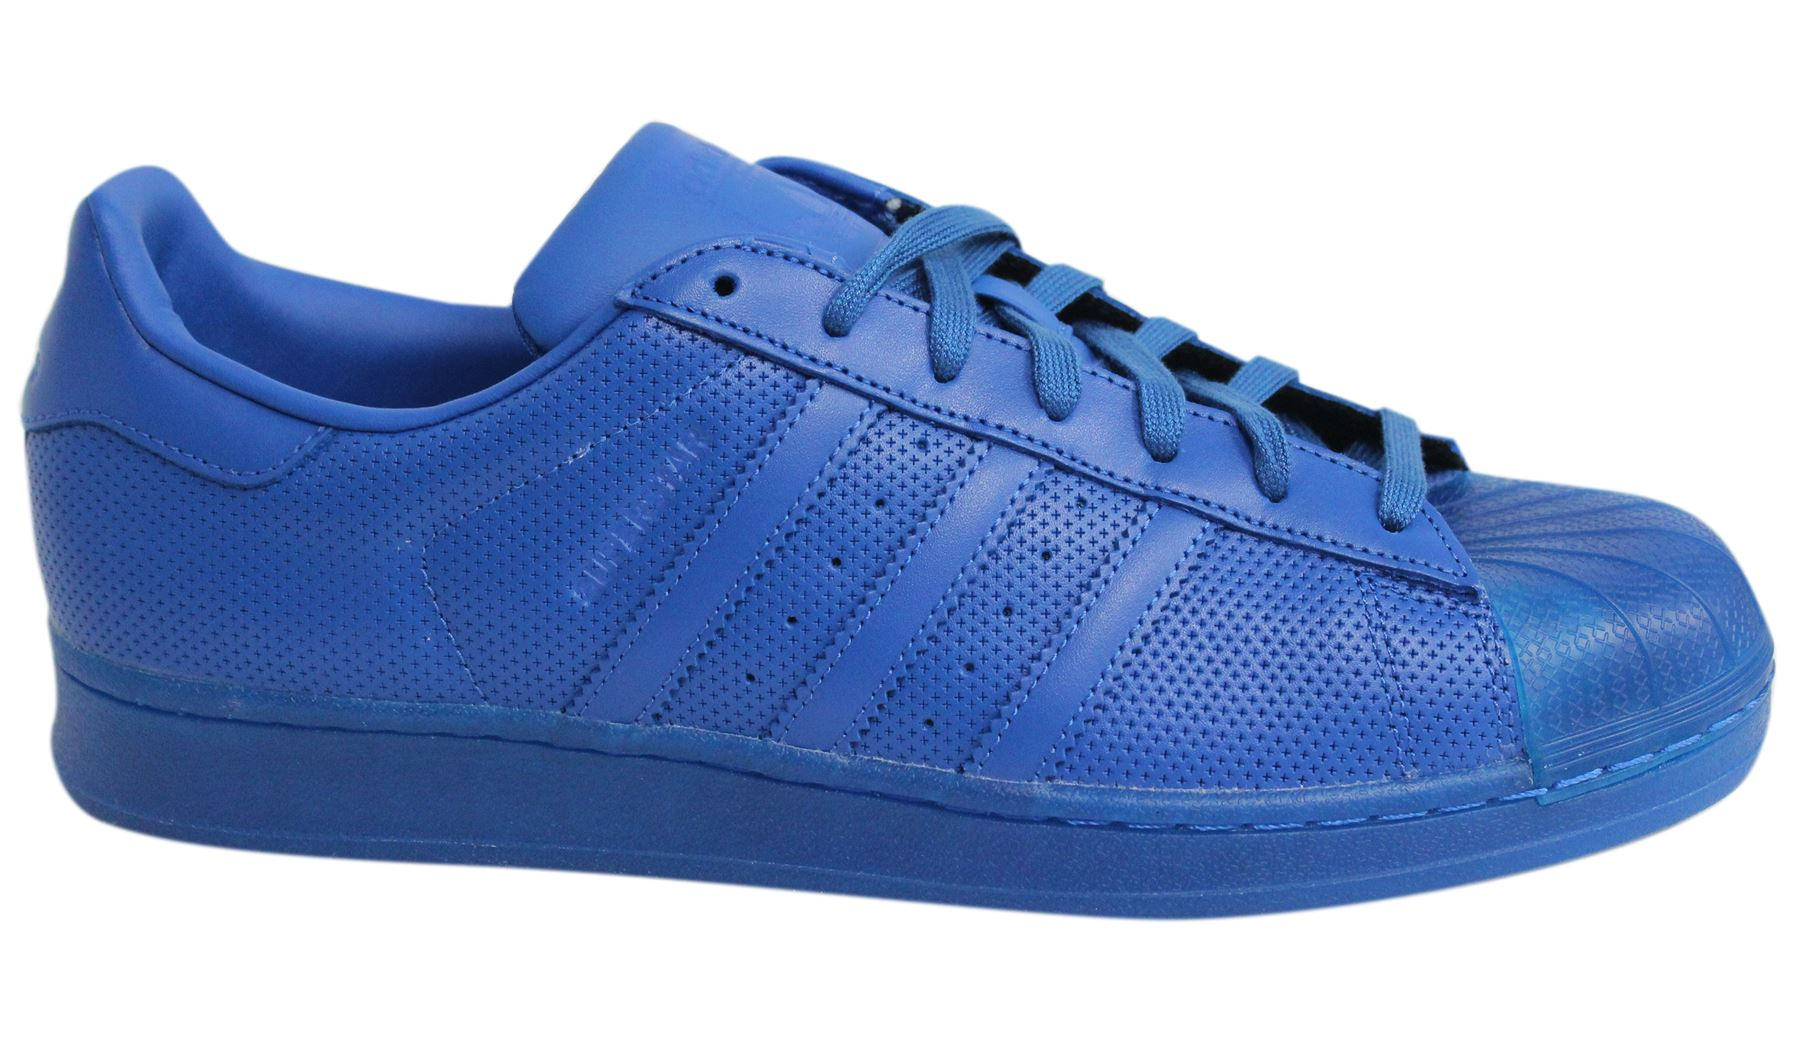 b69bd657a355 Adidas Superstar Adicolour Lace Up Blue Leather Mens Trainers S80327 ...